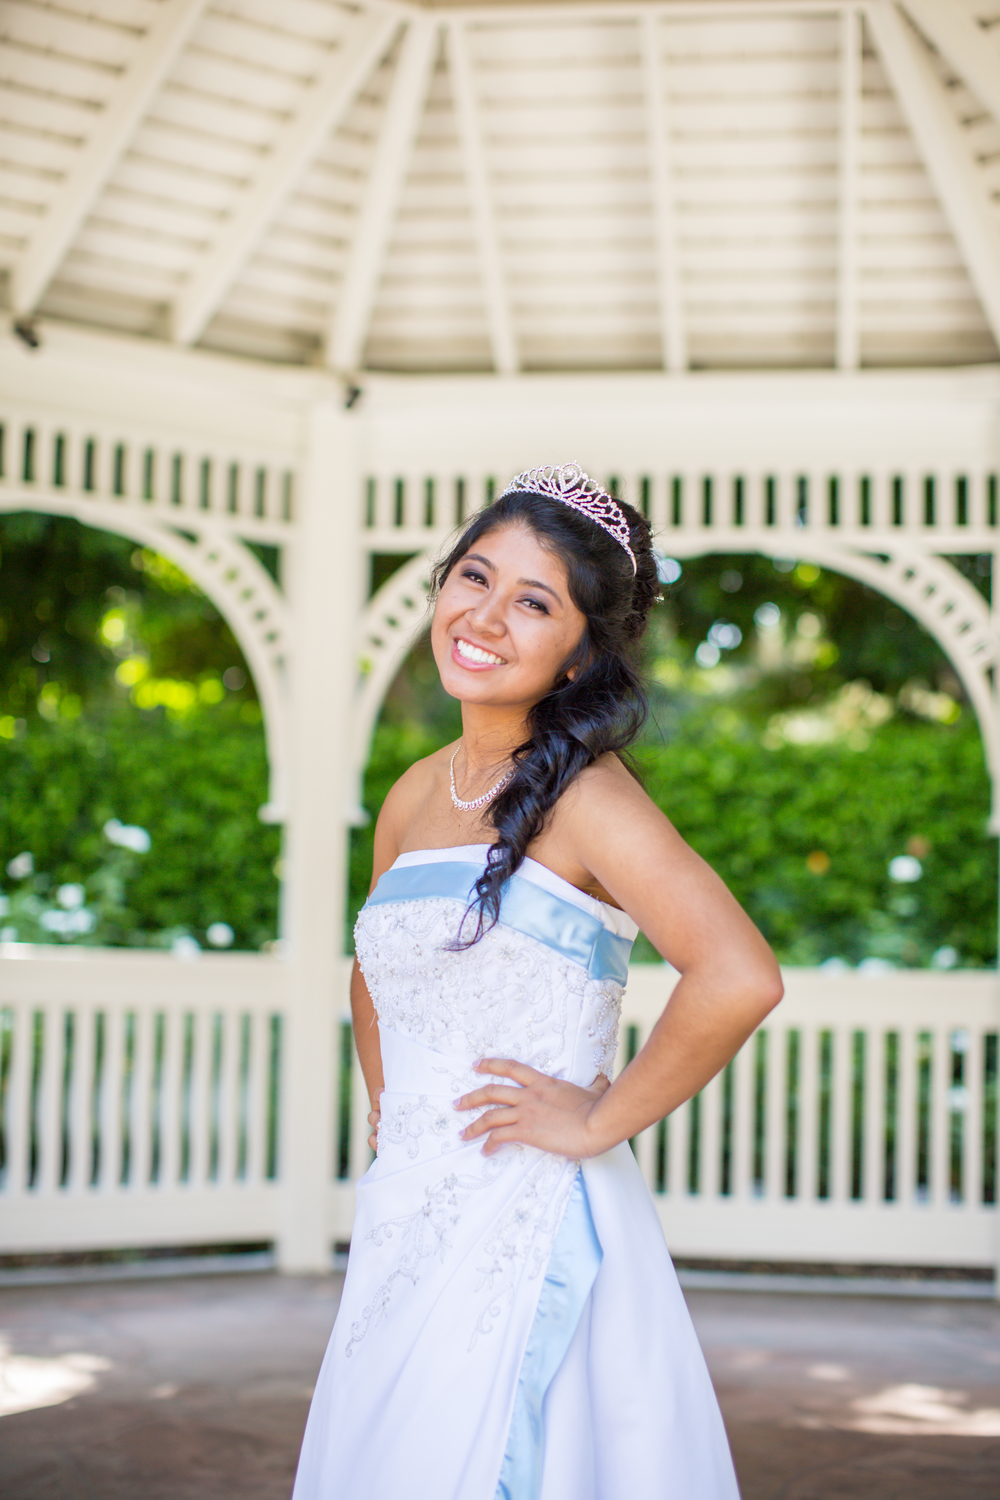 What a beautiful debutante/princess!